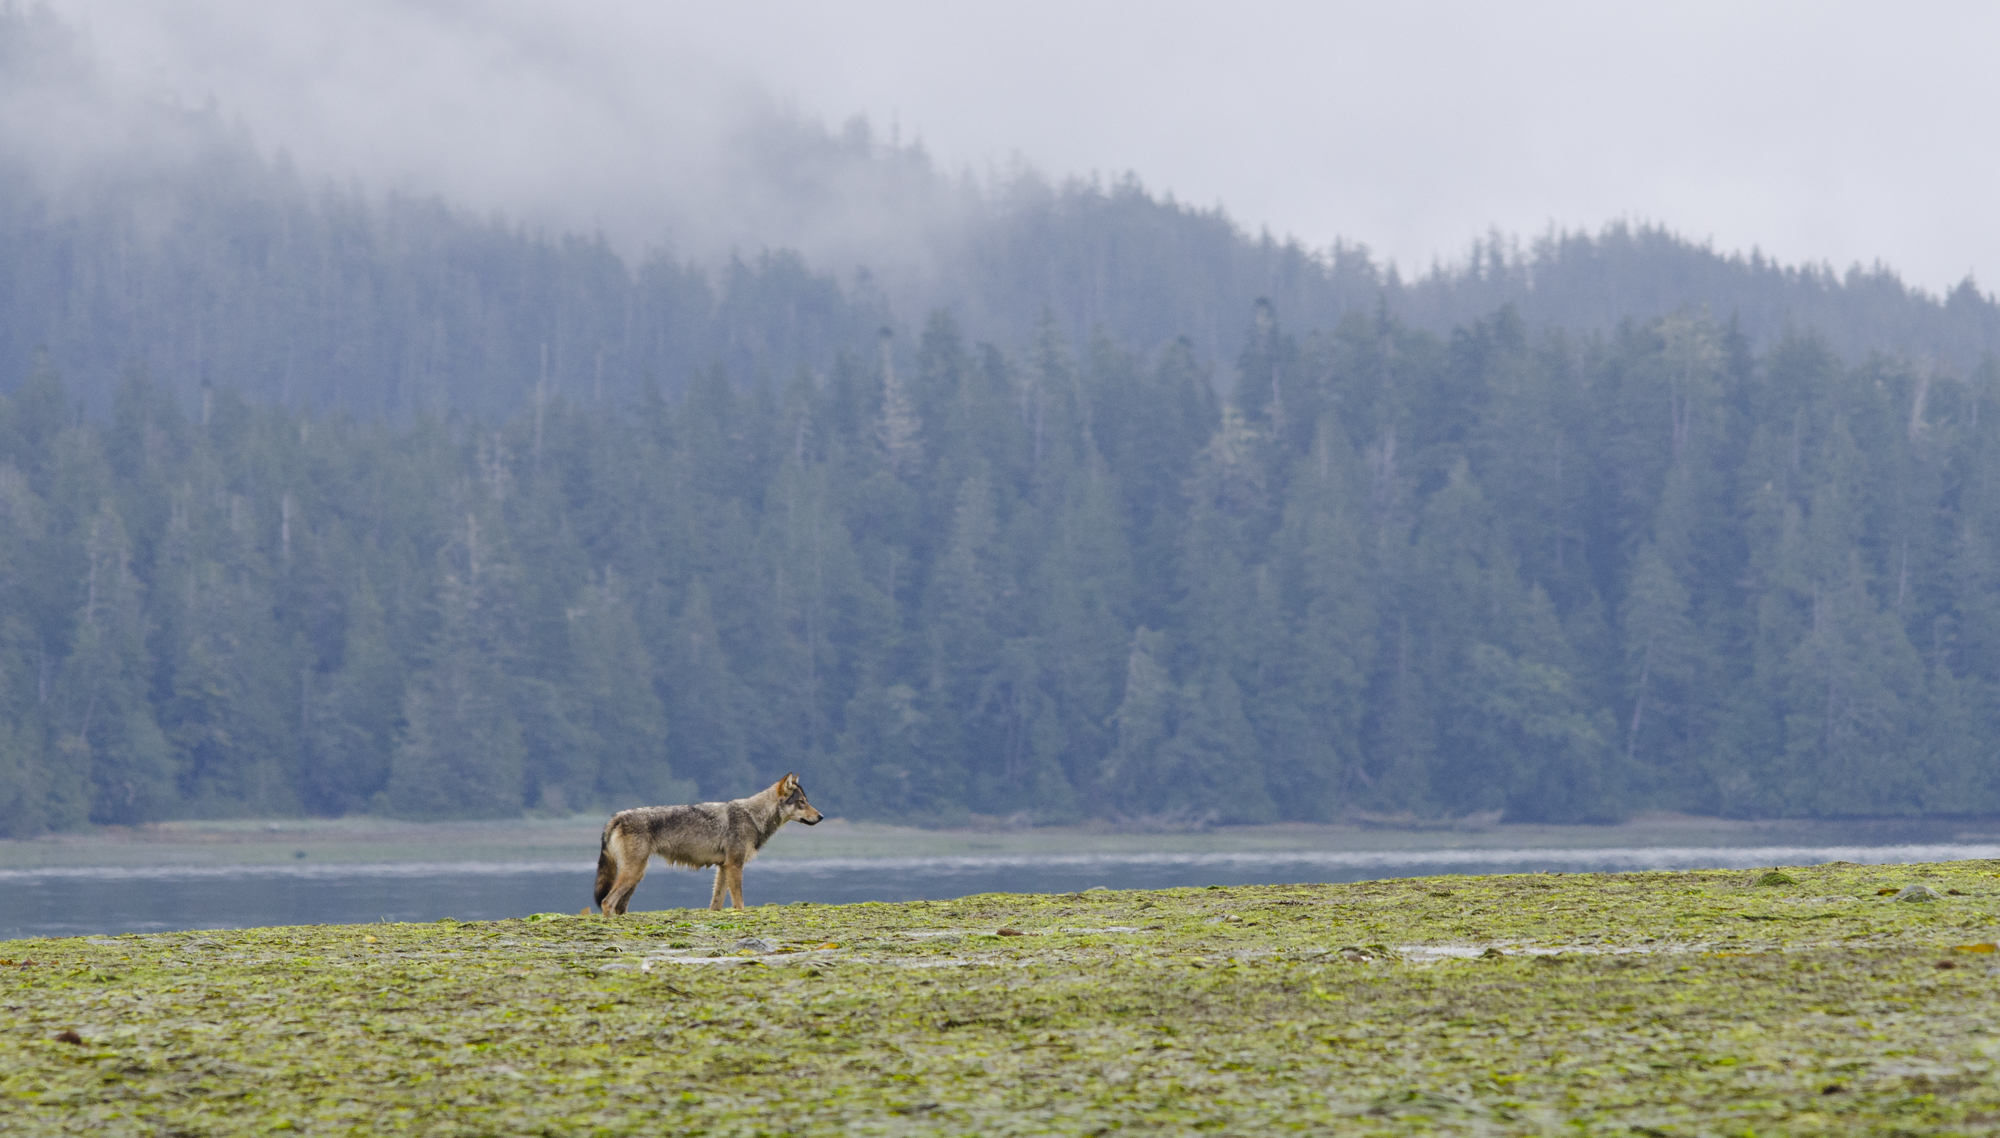 A coastal grey wolf patrols her territory at low tide.